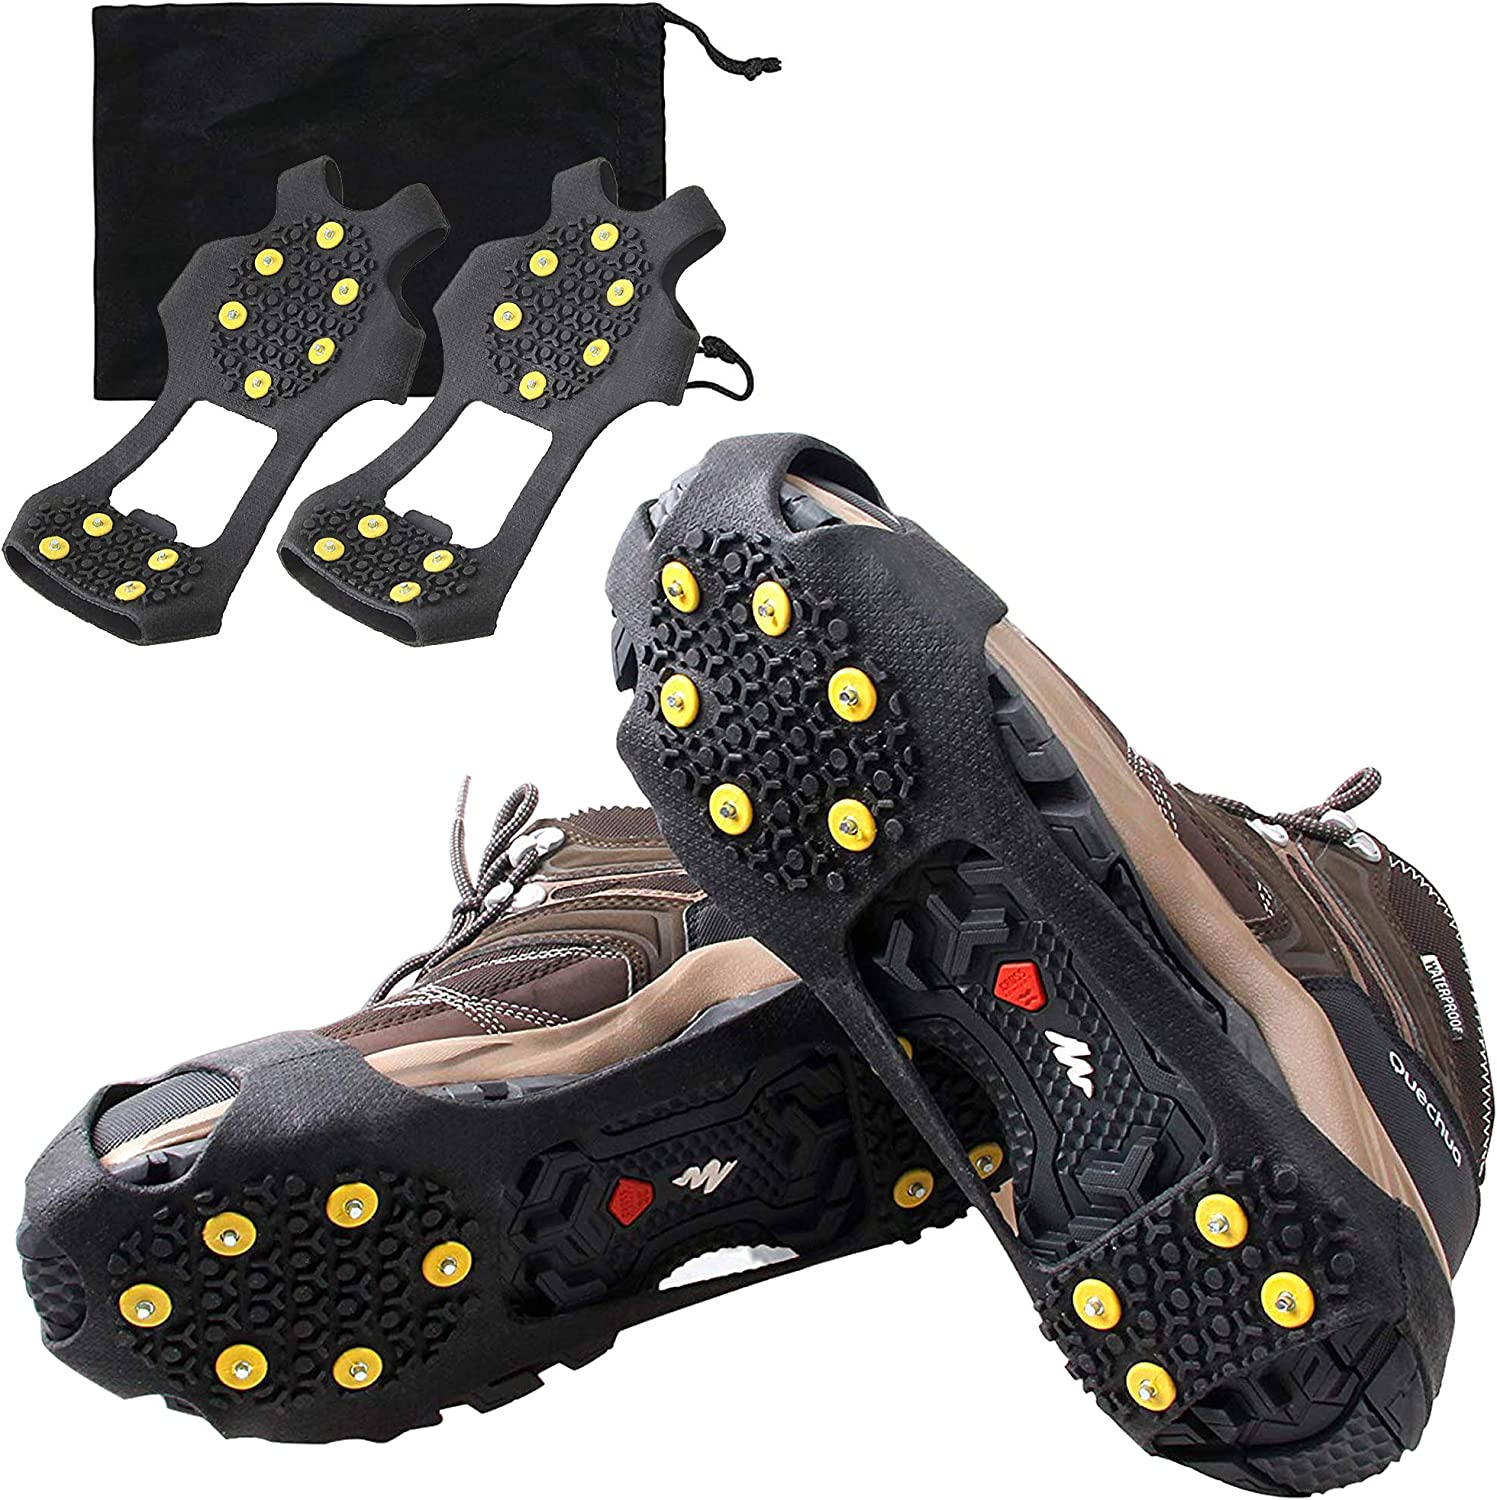 Crampons Ice Traction Cleats,Traction Cleats for Walking or Hiking on Snow and Ice Women Men Kids Anti Slip Jogging Grips Quickly and Easily Over Footwear for Snow and Ice